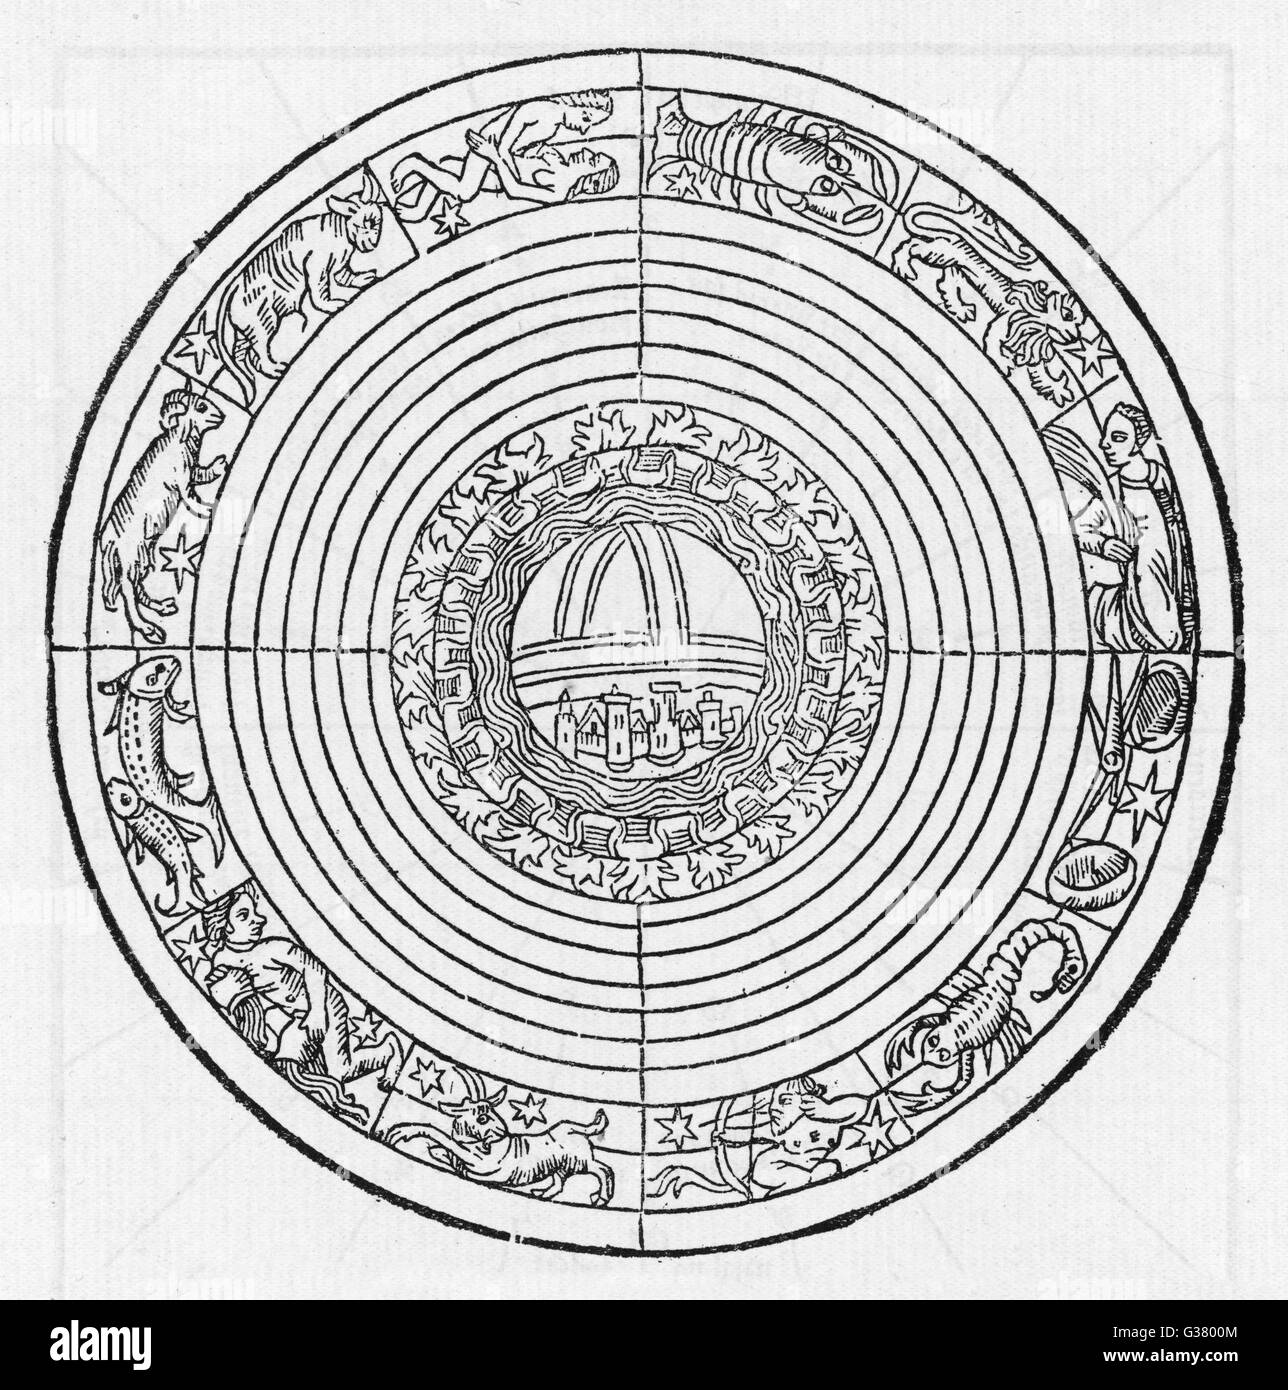 The twelve signs turn round  the central Earth         Date: 16th century - Stock Image